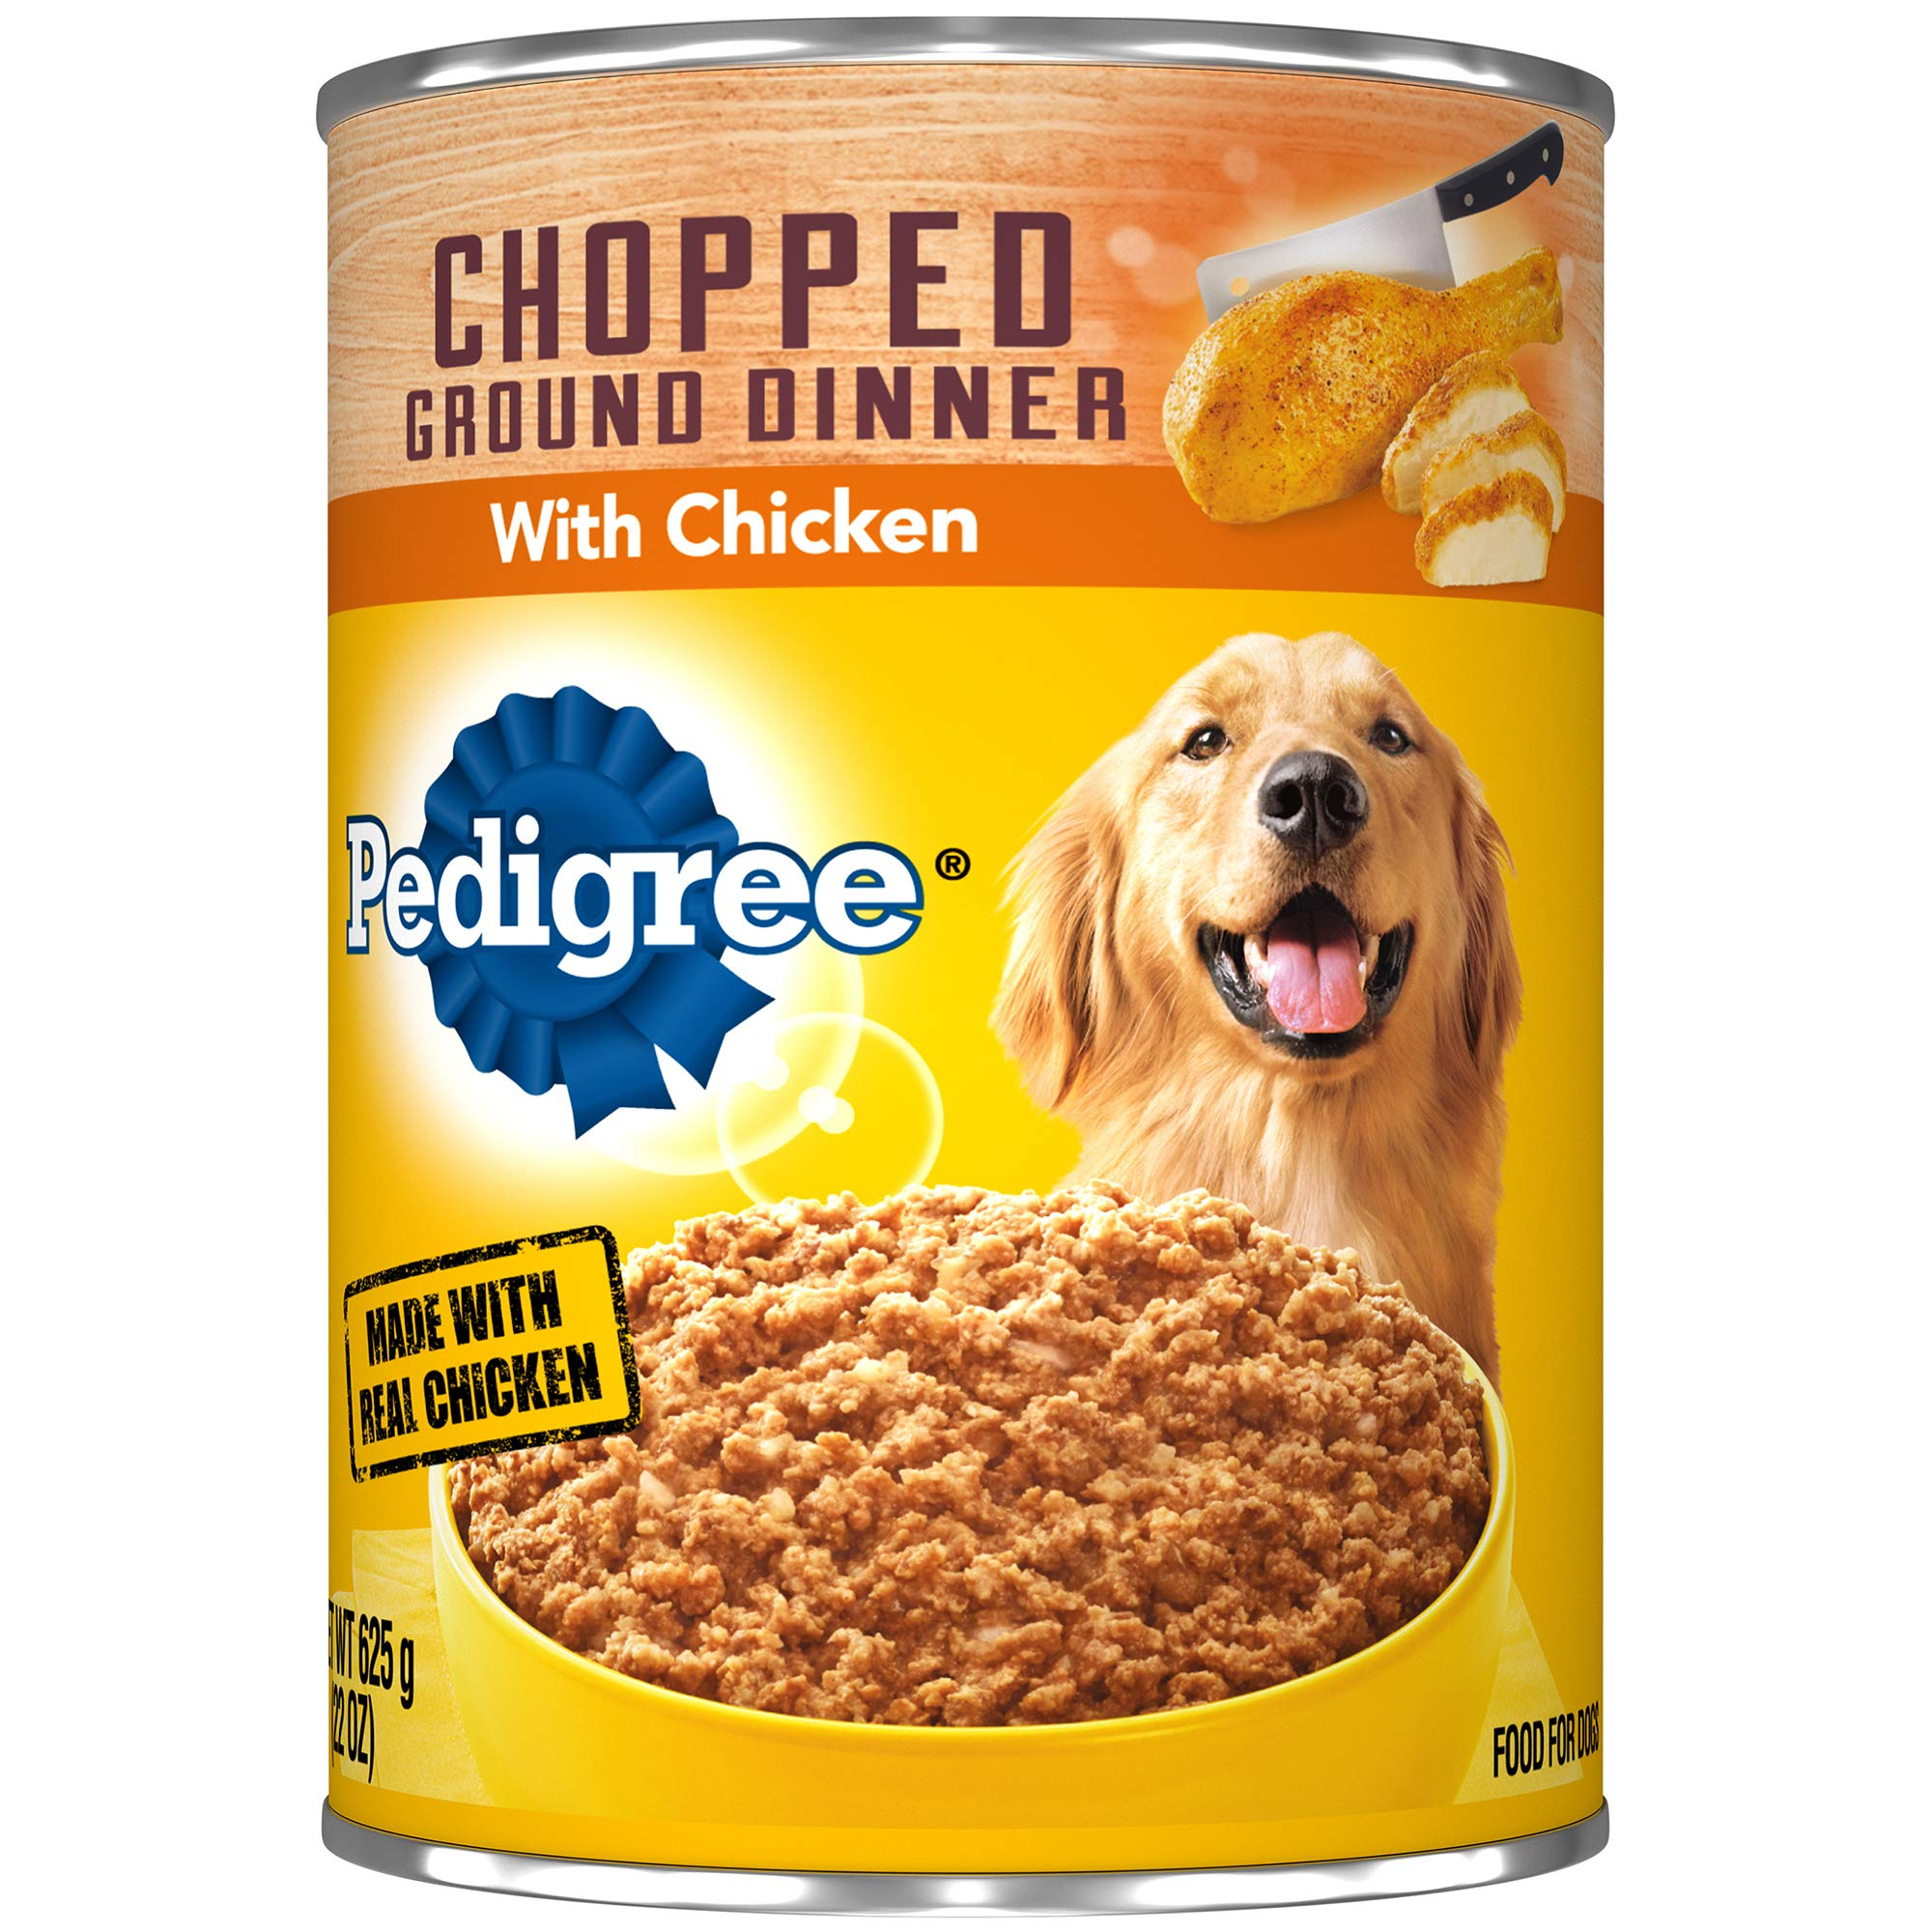 Pedigree Chopped Ground Dinner With Chicken Adult Canned Wet Dog Food, (12) 22 Oz. Cans by Pedigree